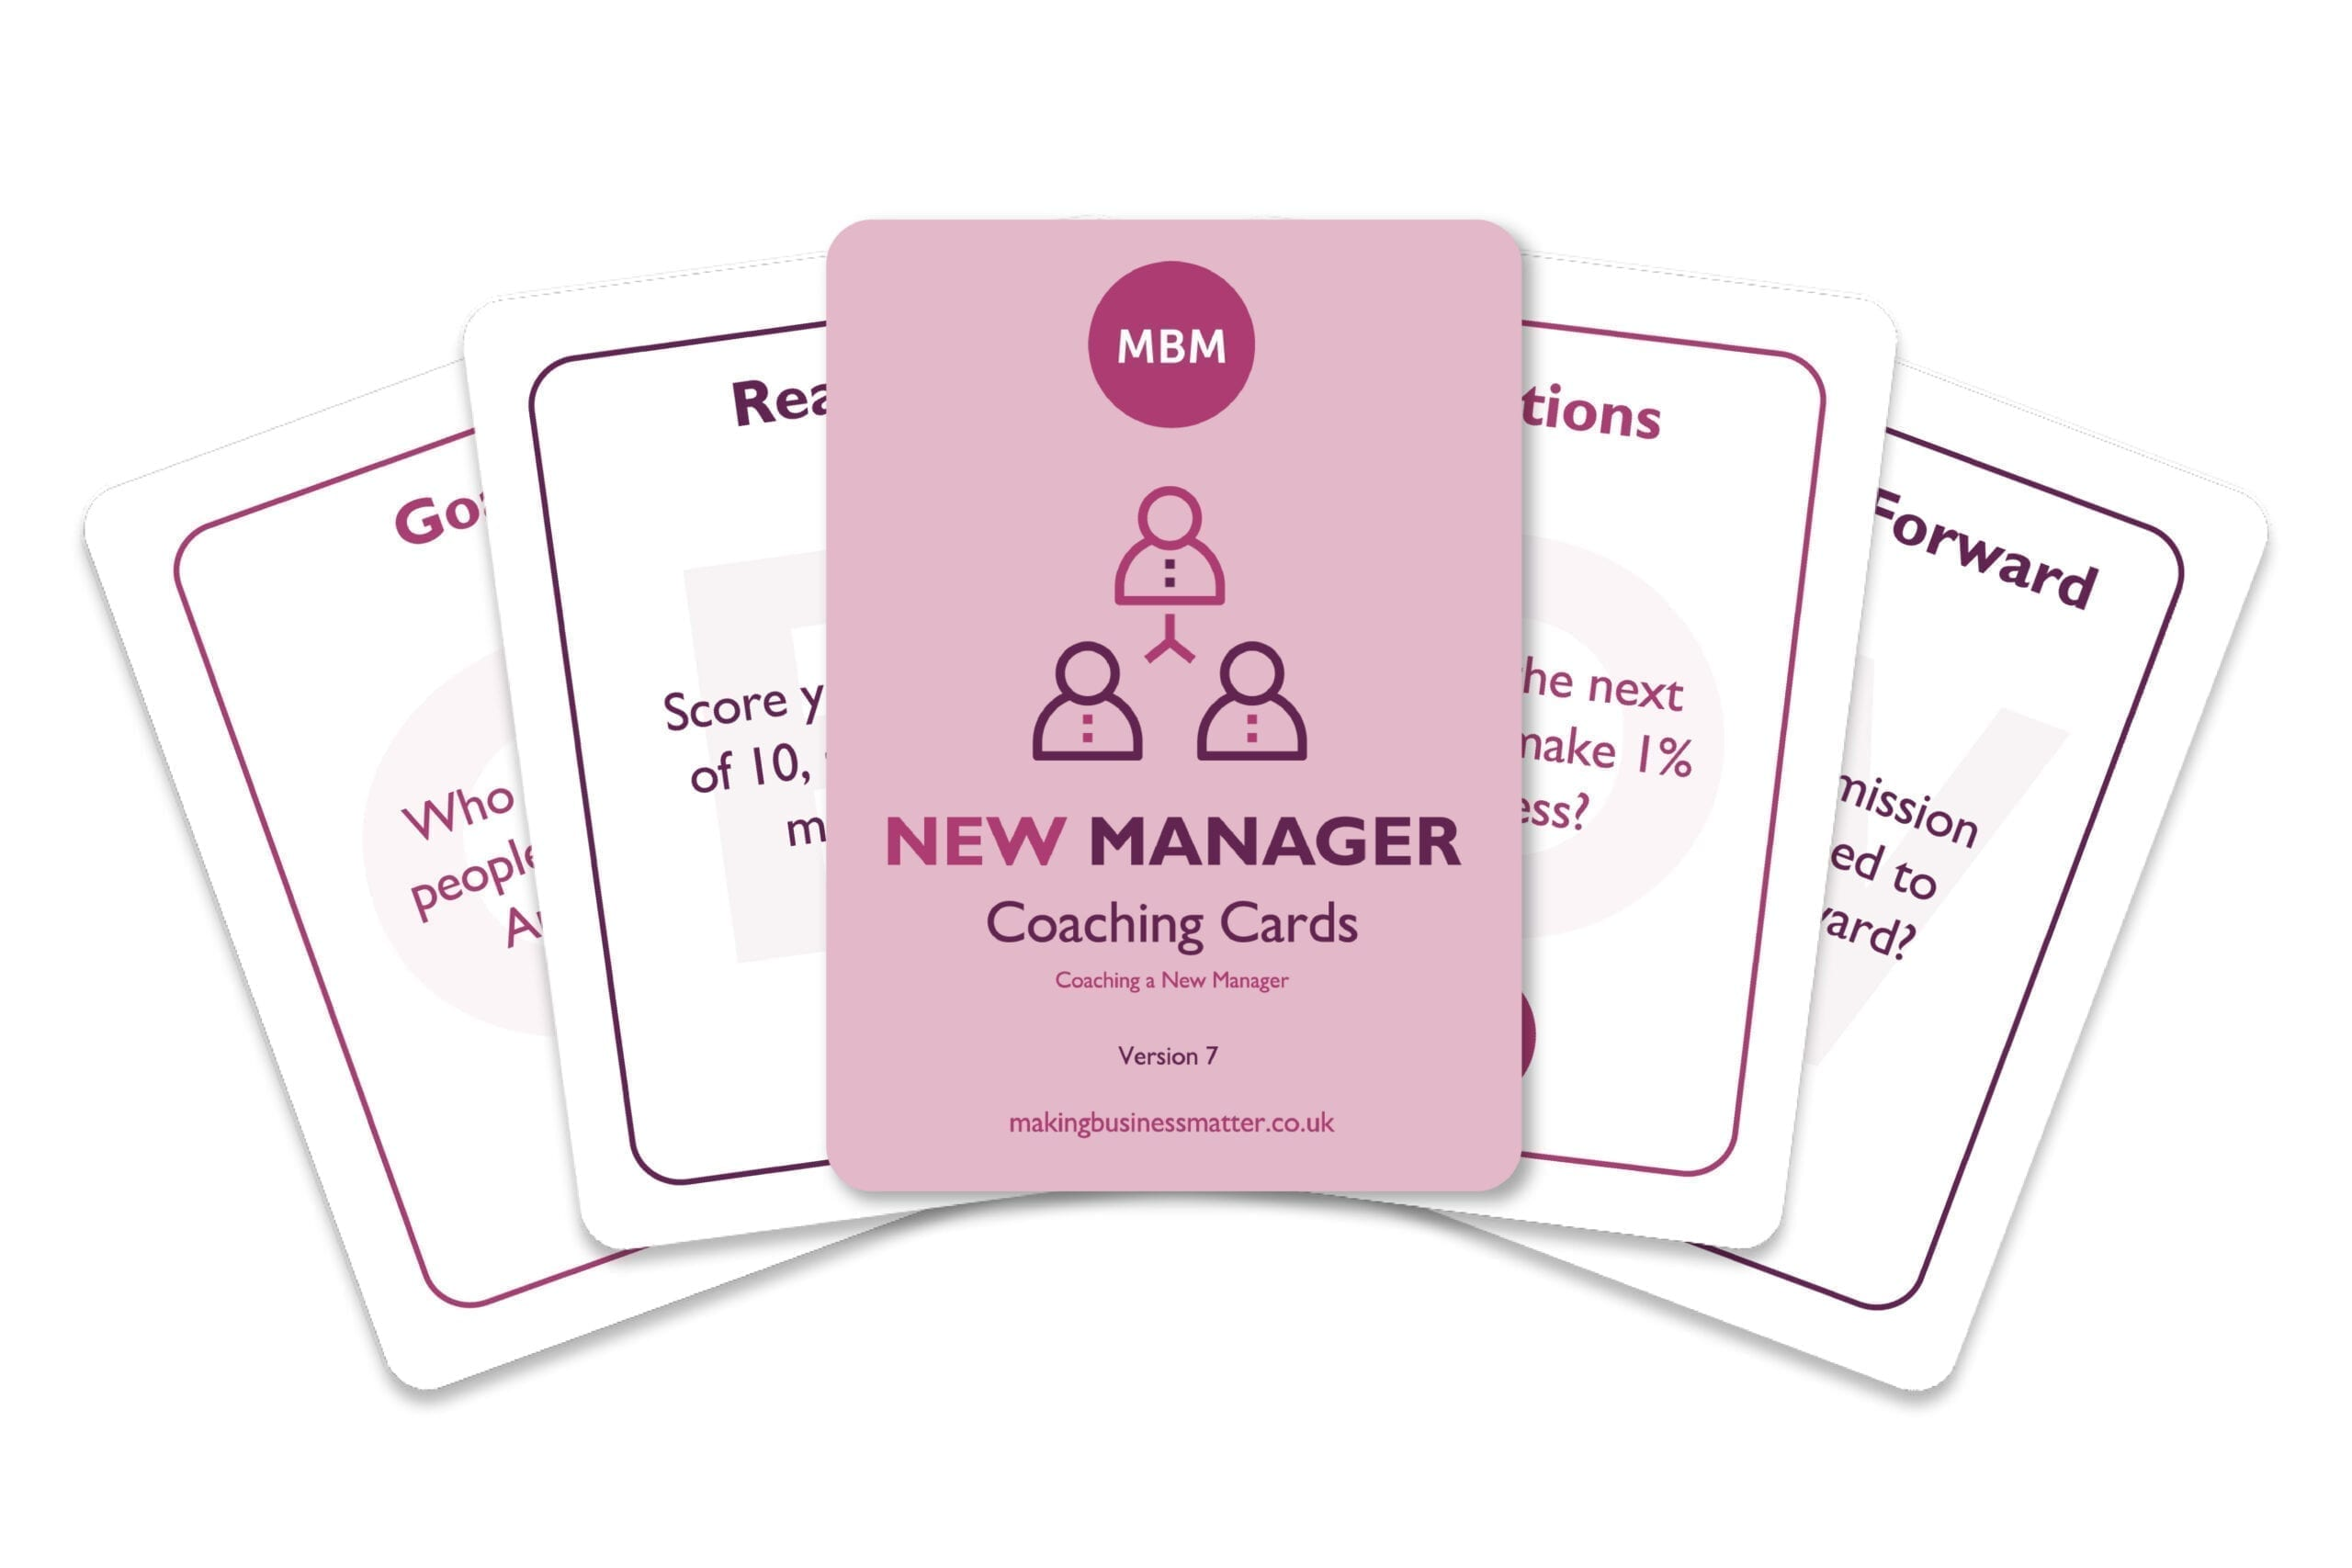 New Manager Coaching Cards